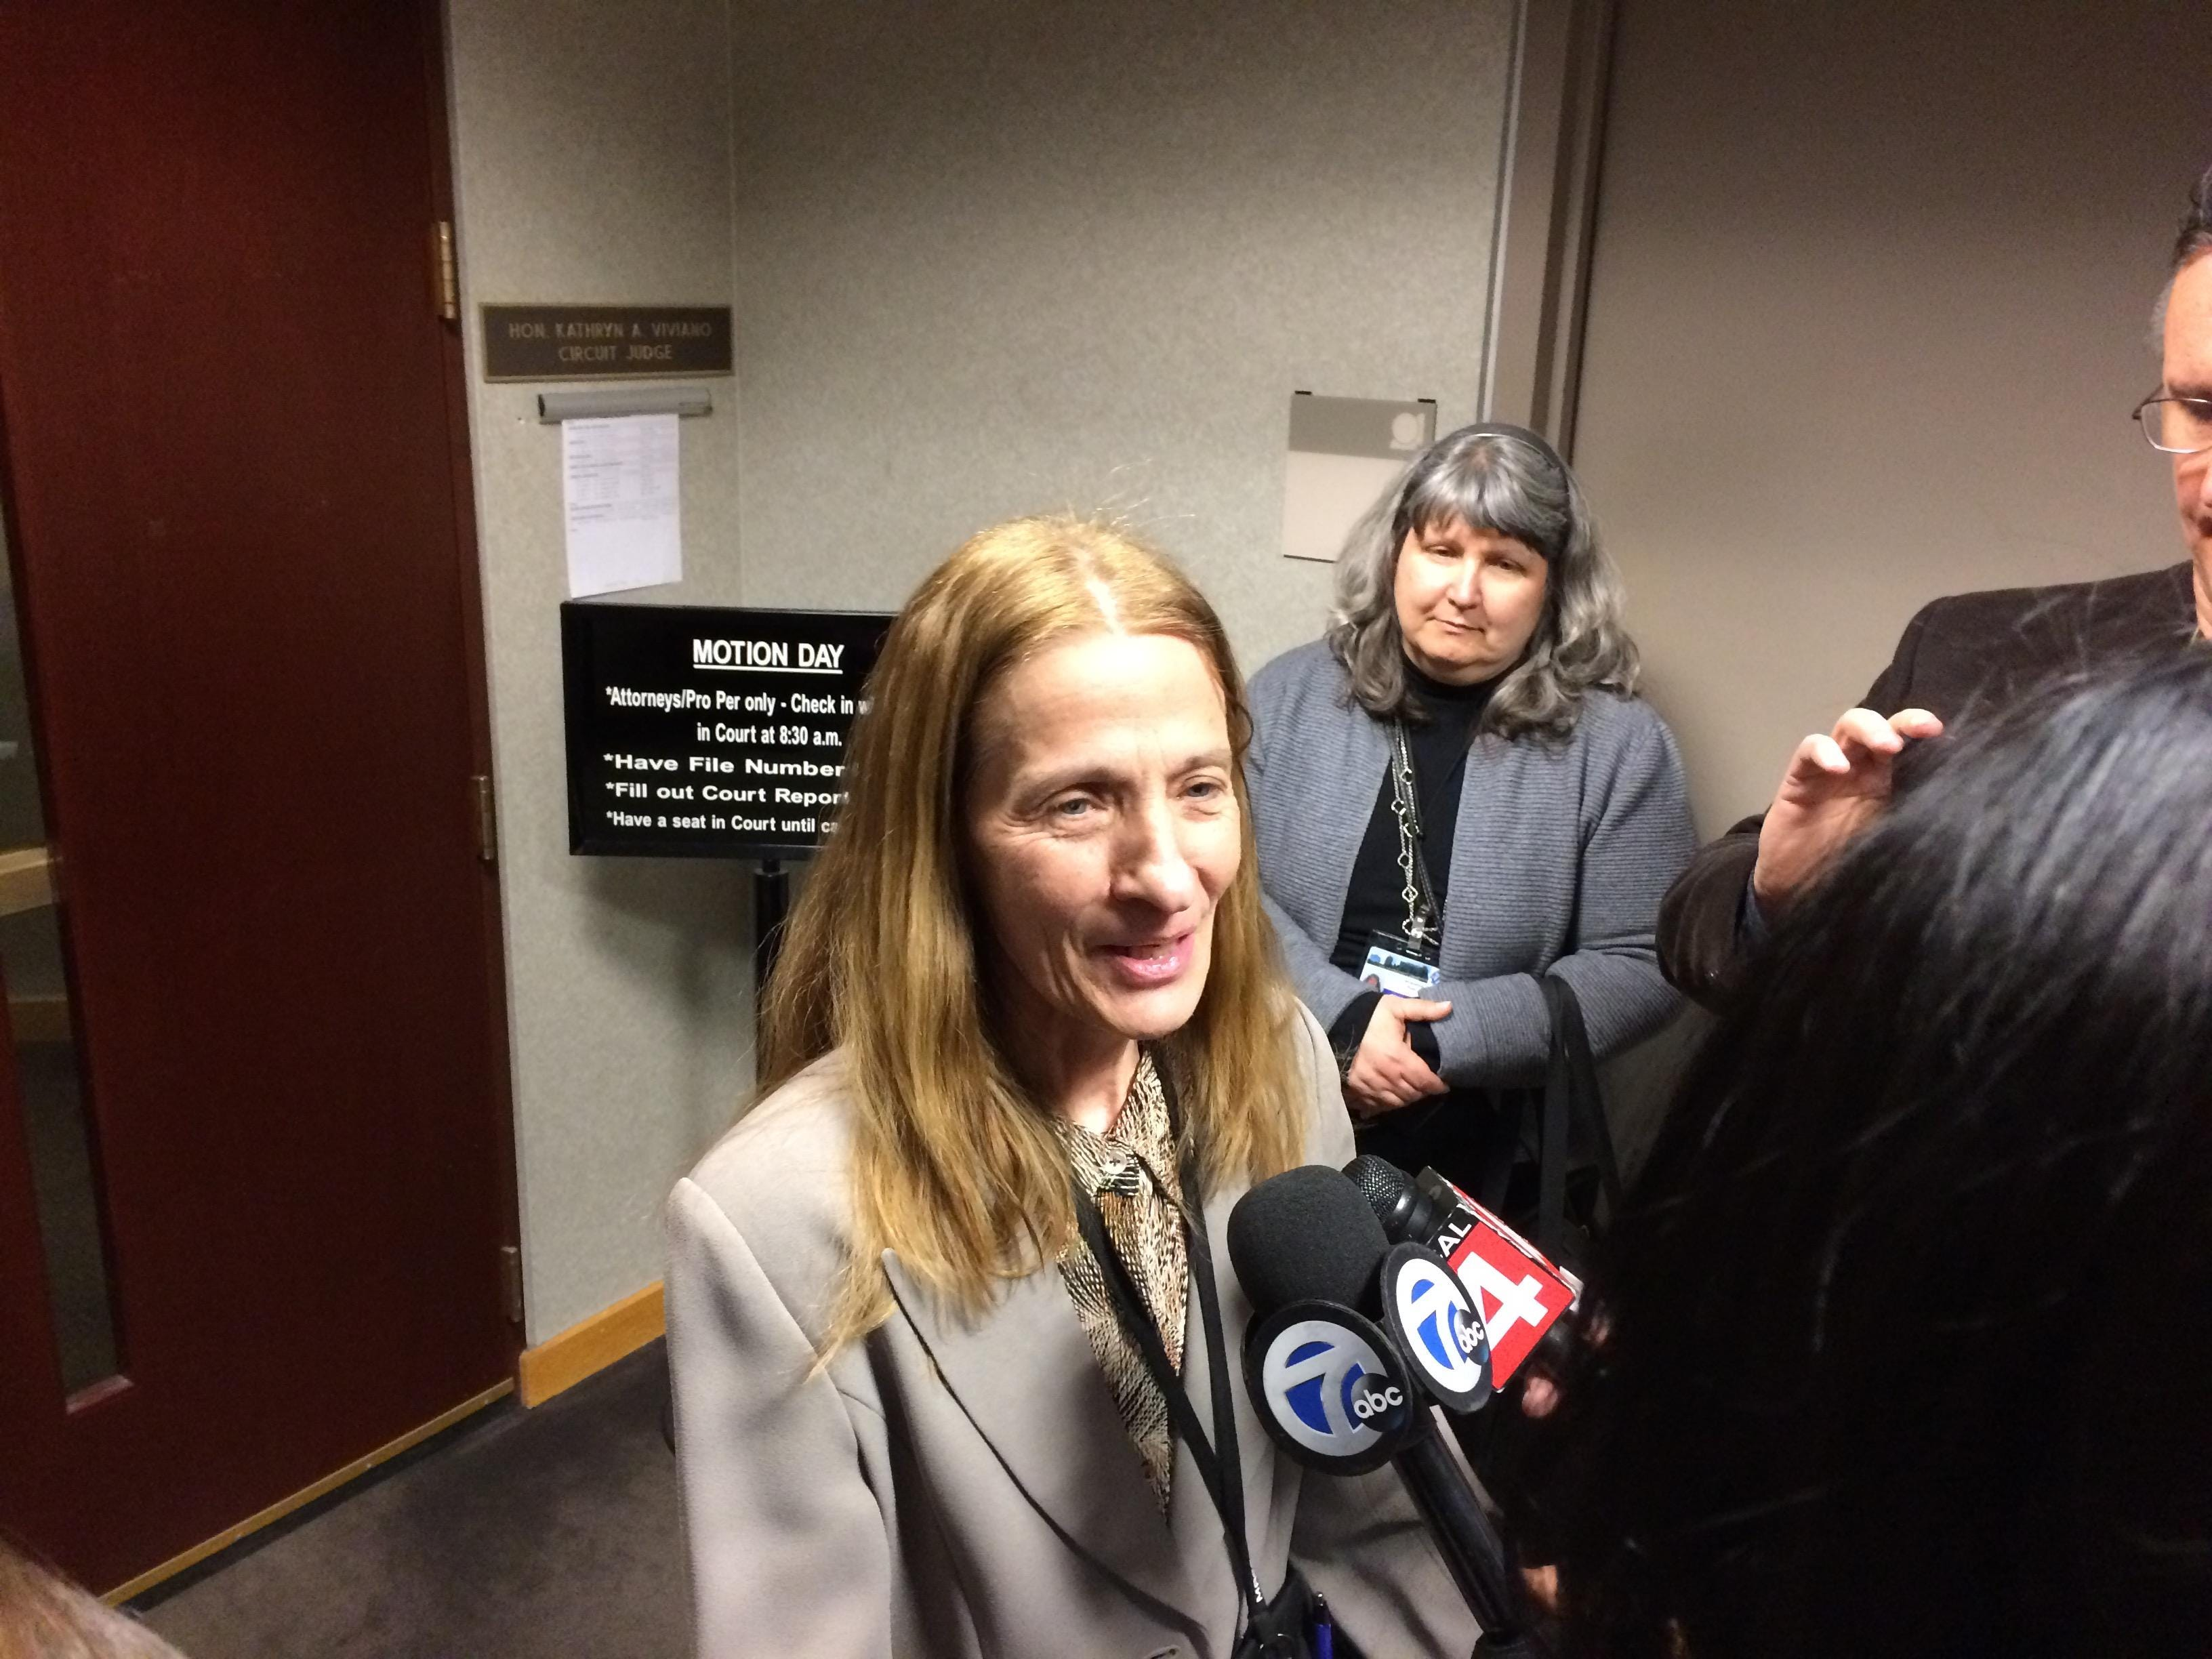 Macomb Clerk sues over firearm ban in county offices